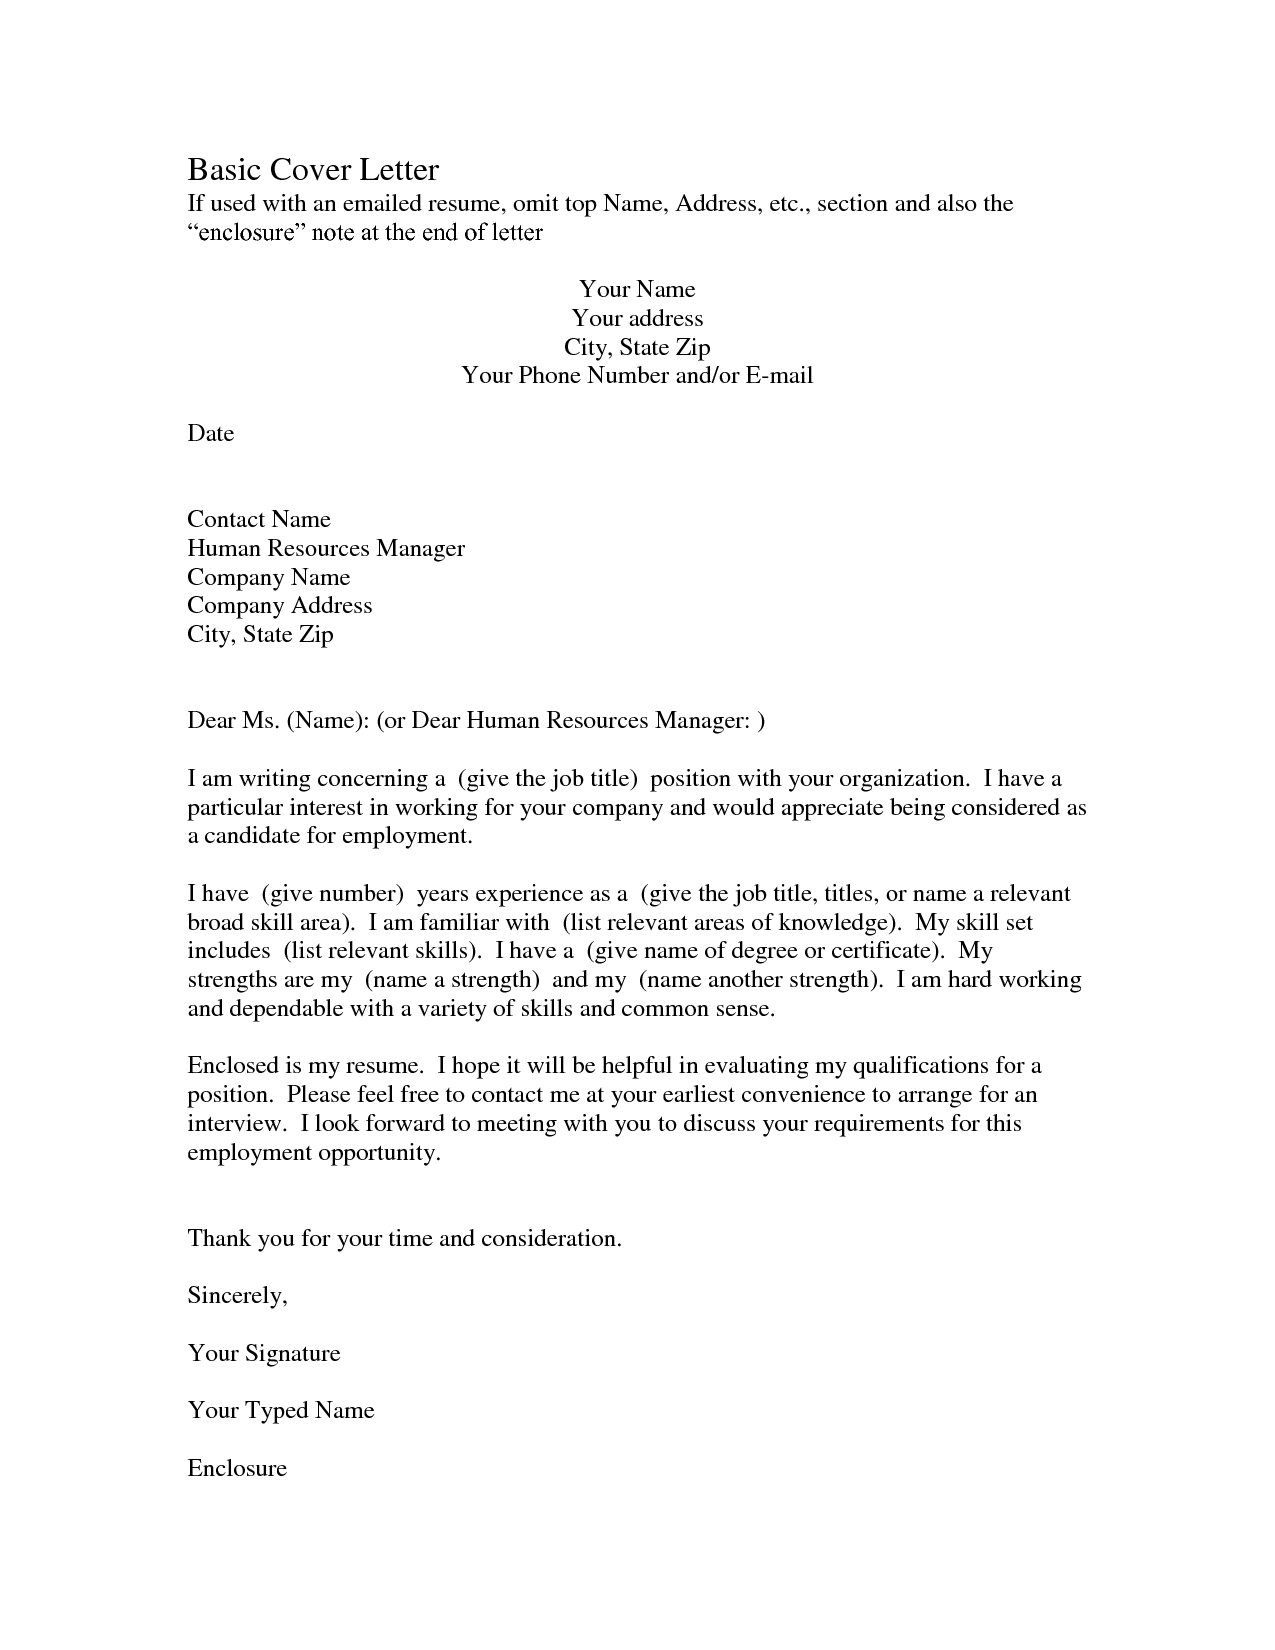 Covering Letter Example Simple Cover Letter ExampleSimple Cover